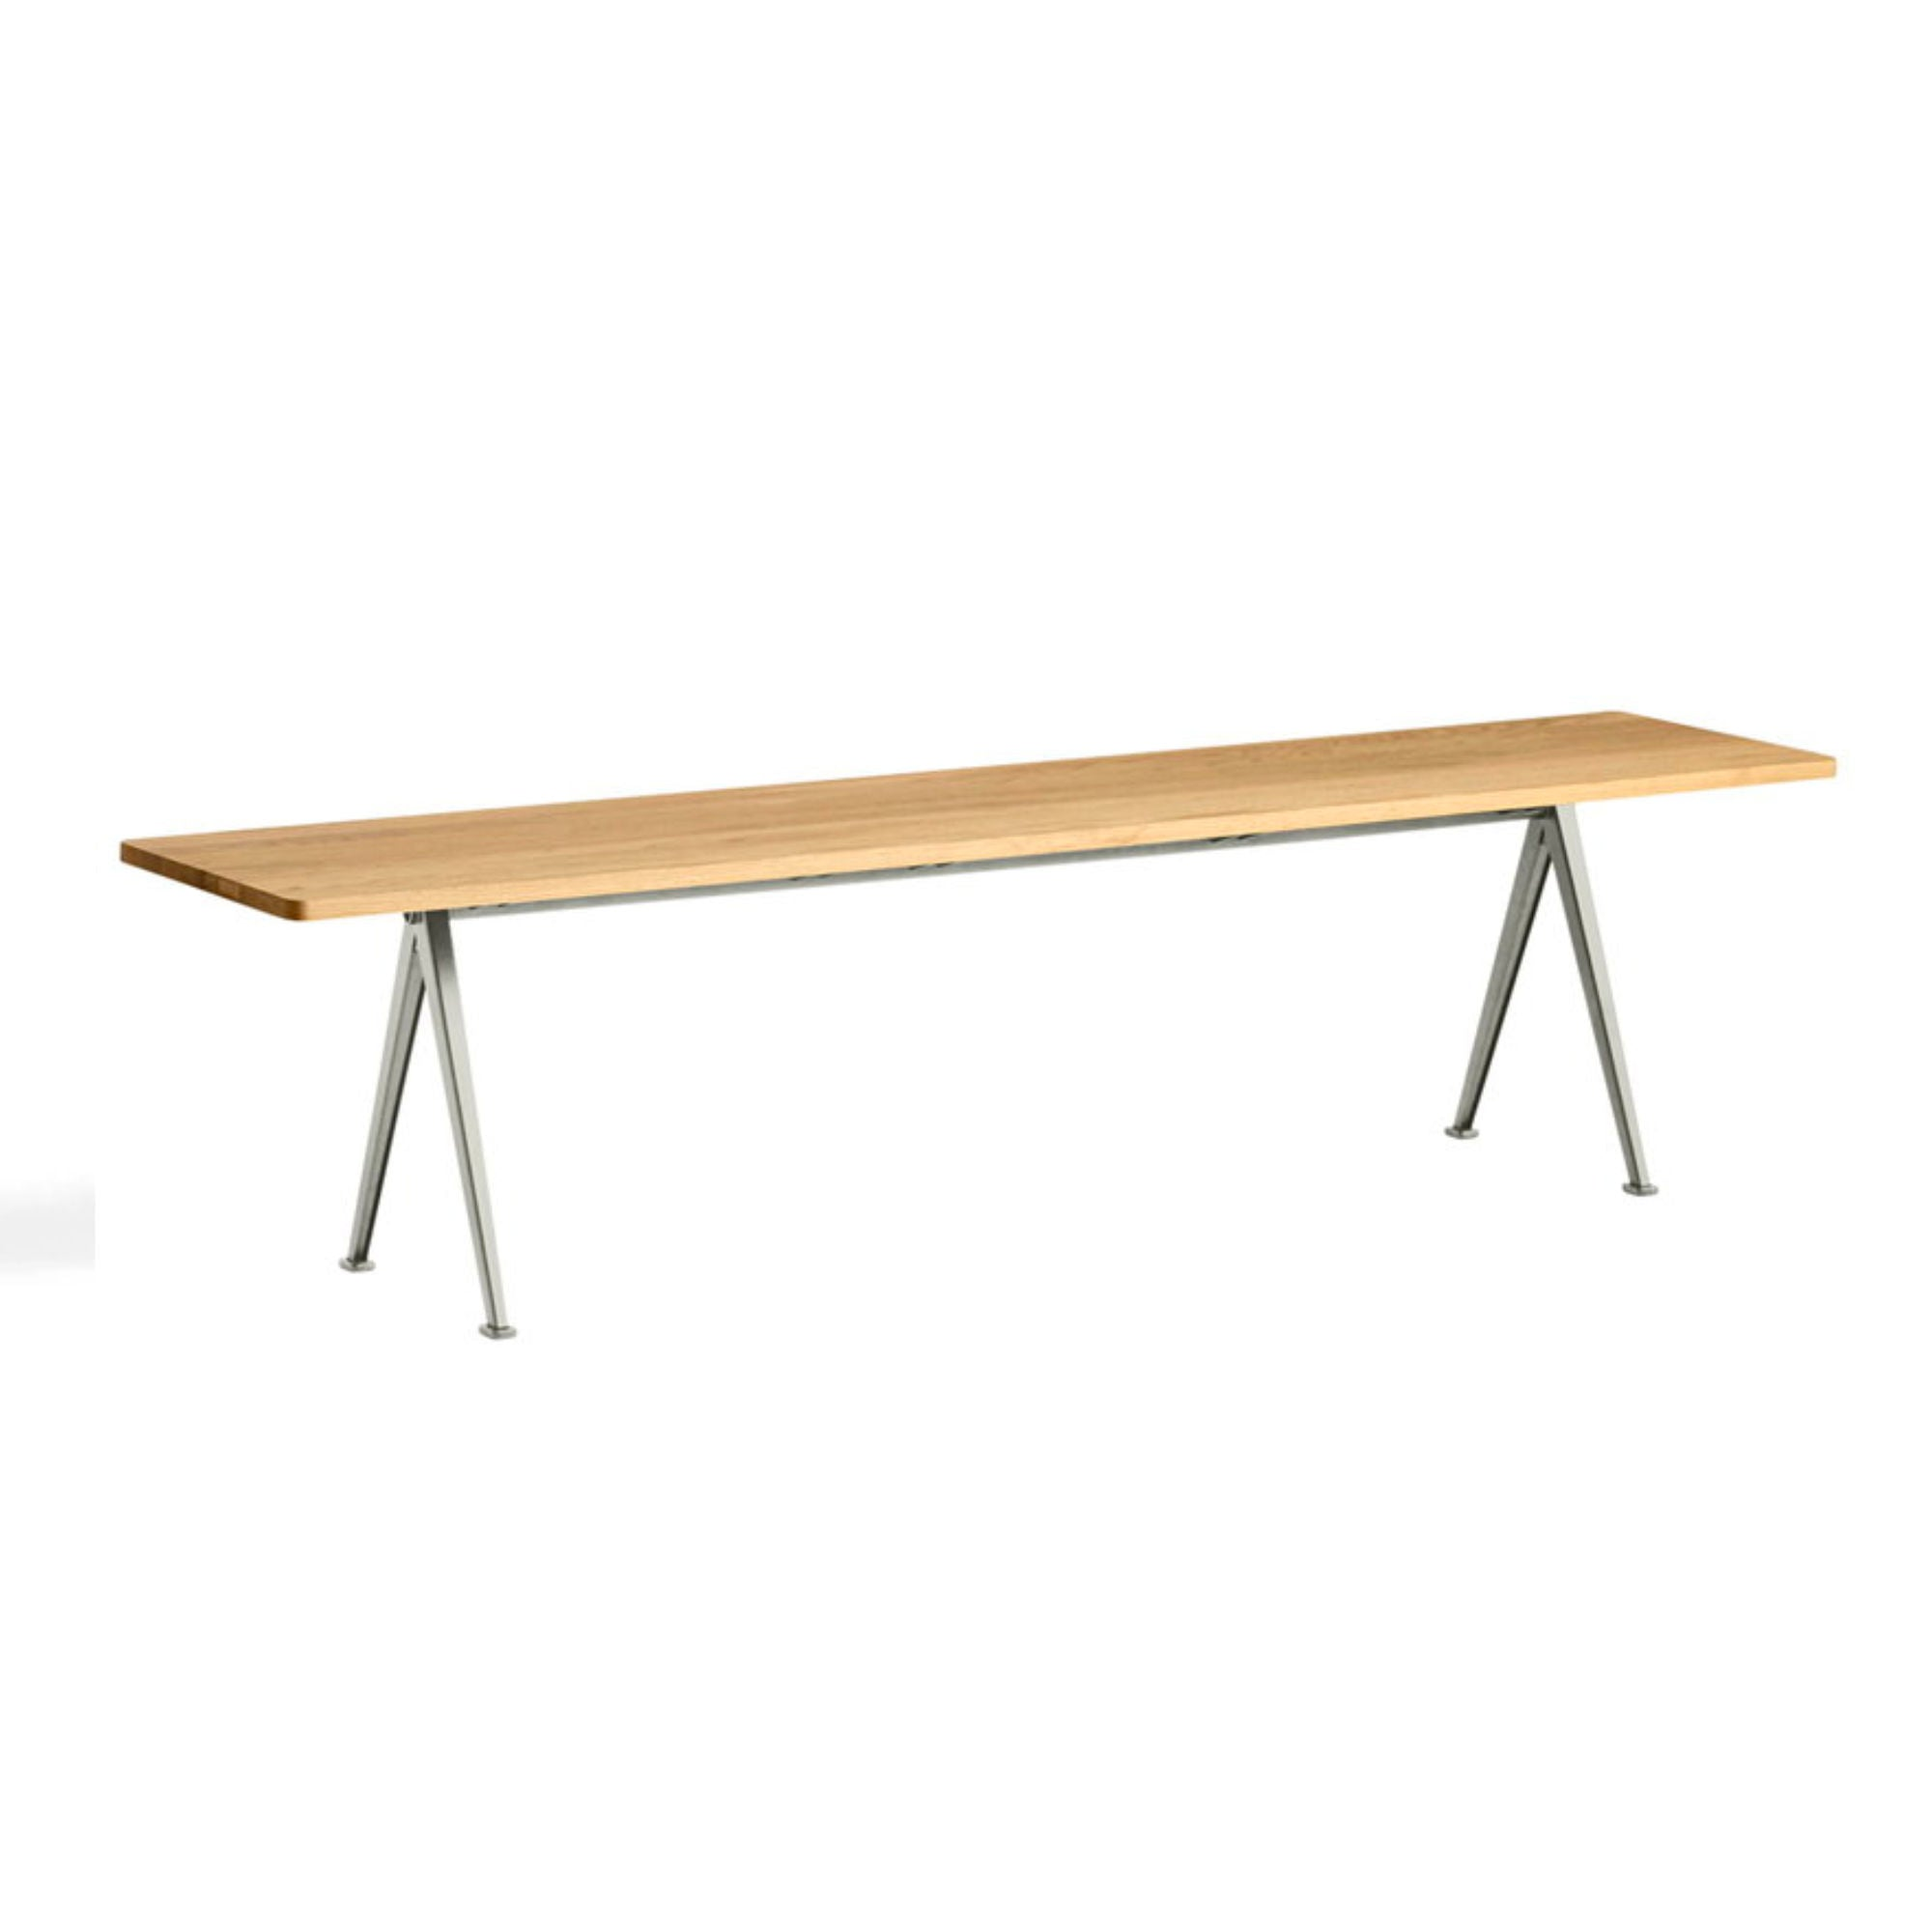 Hay Pyramid Bench 12 L190 , Beige - Lacquered Oak